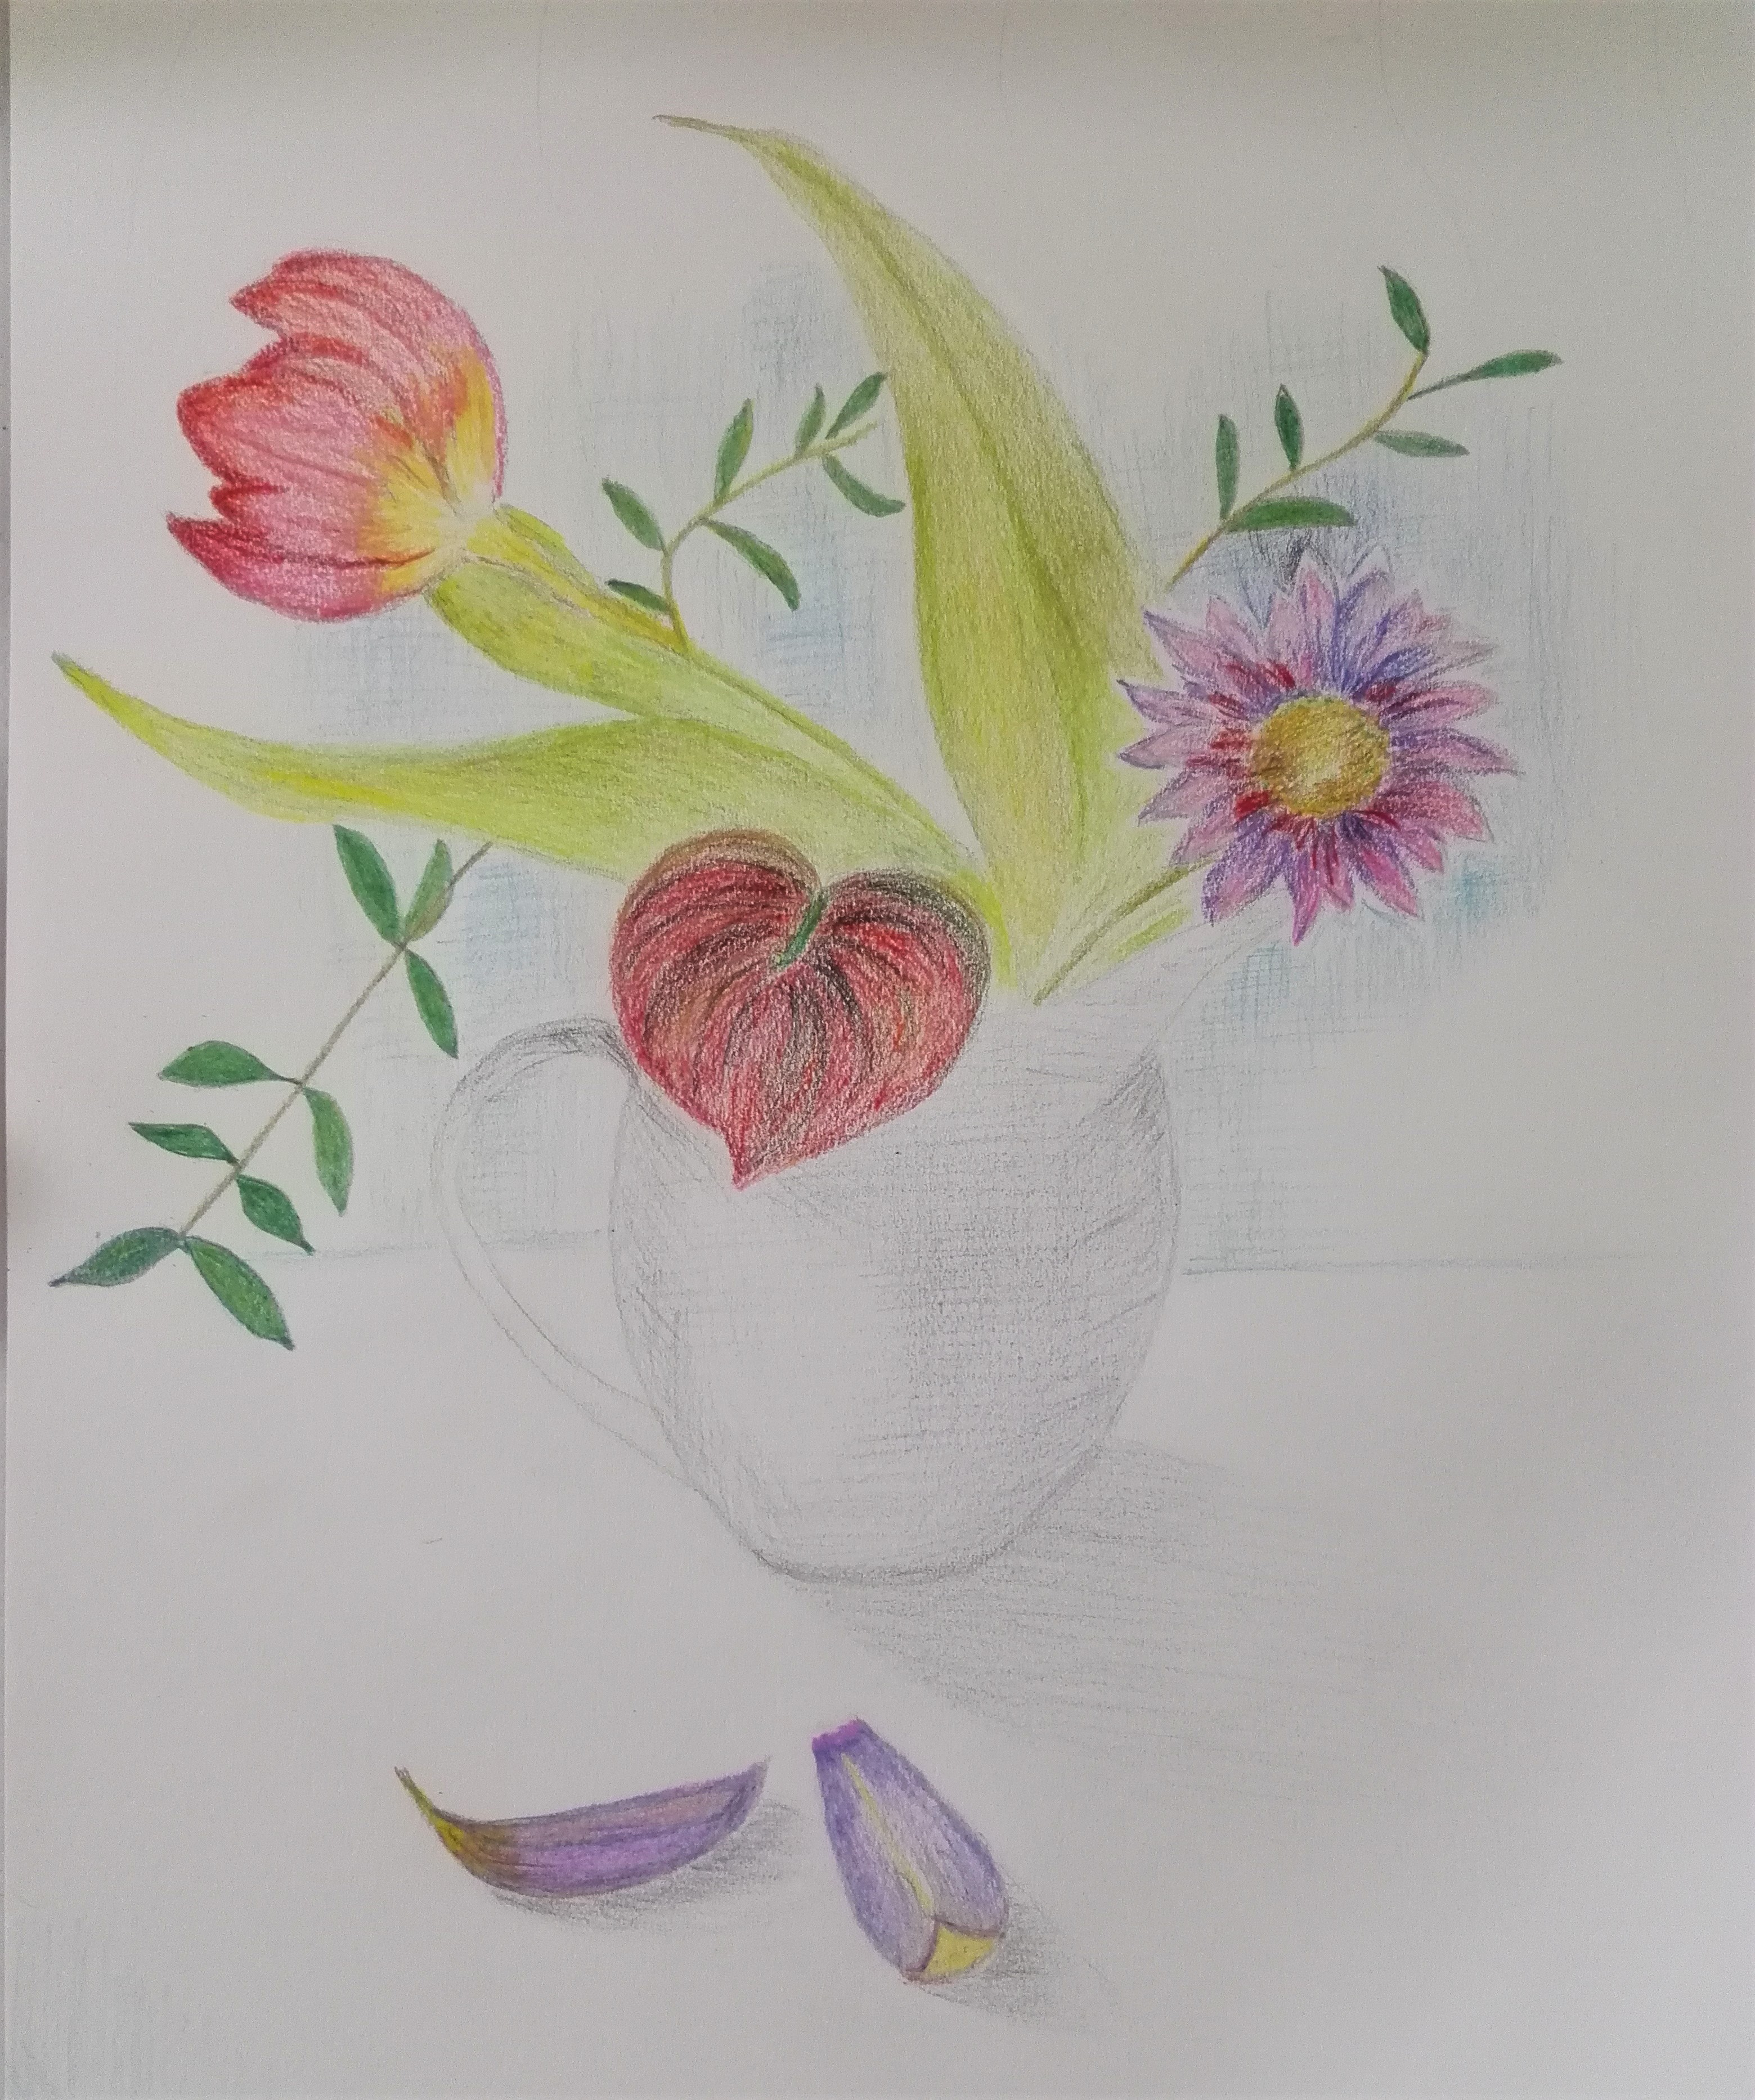 Adult Learner's work . Coloured pencil drawing of floral still life at Magic Wool Art and Craft Studio